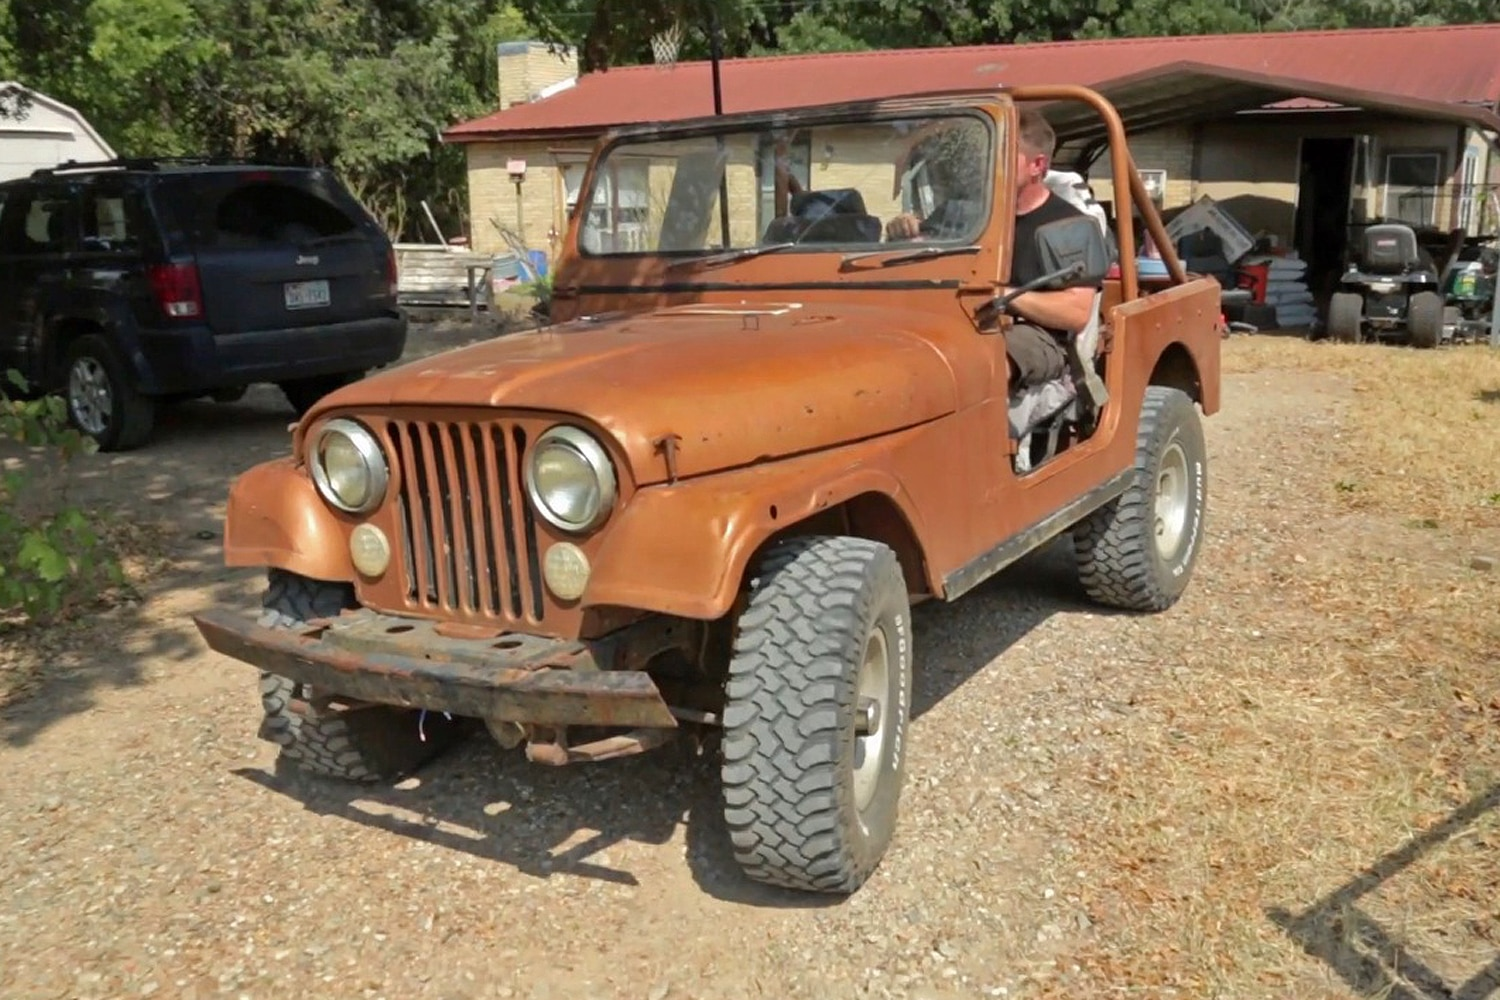 medium resolution of jeep cj7 getting rewired right off the bat the old cj7 needed a little hot wiring to get the